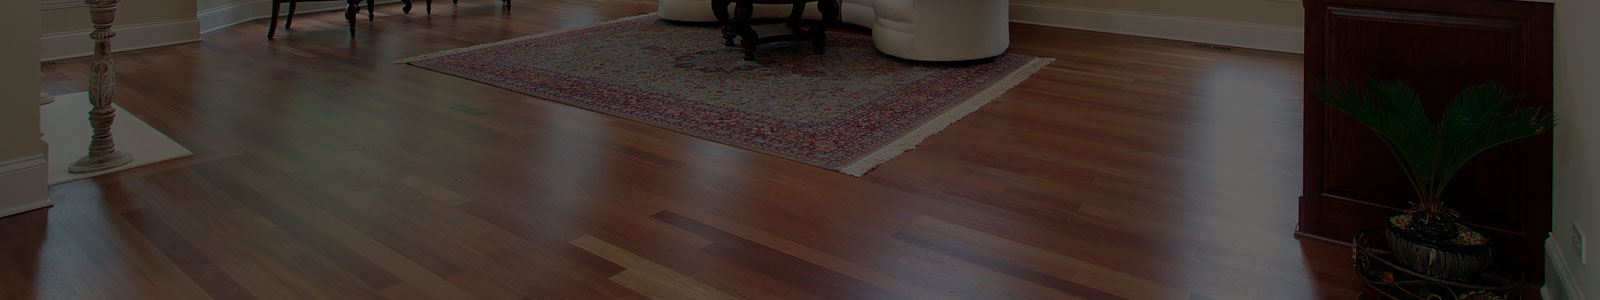 Wood Flooring Houston Wood Floor Contractors Wood Floor